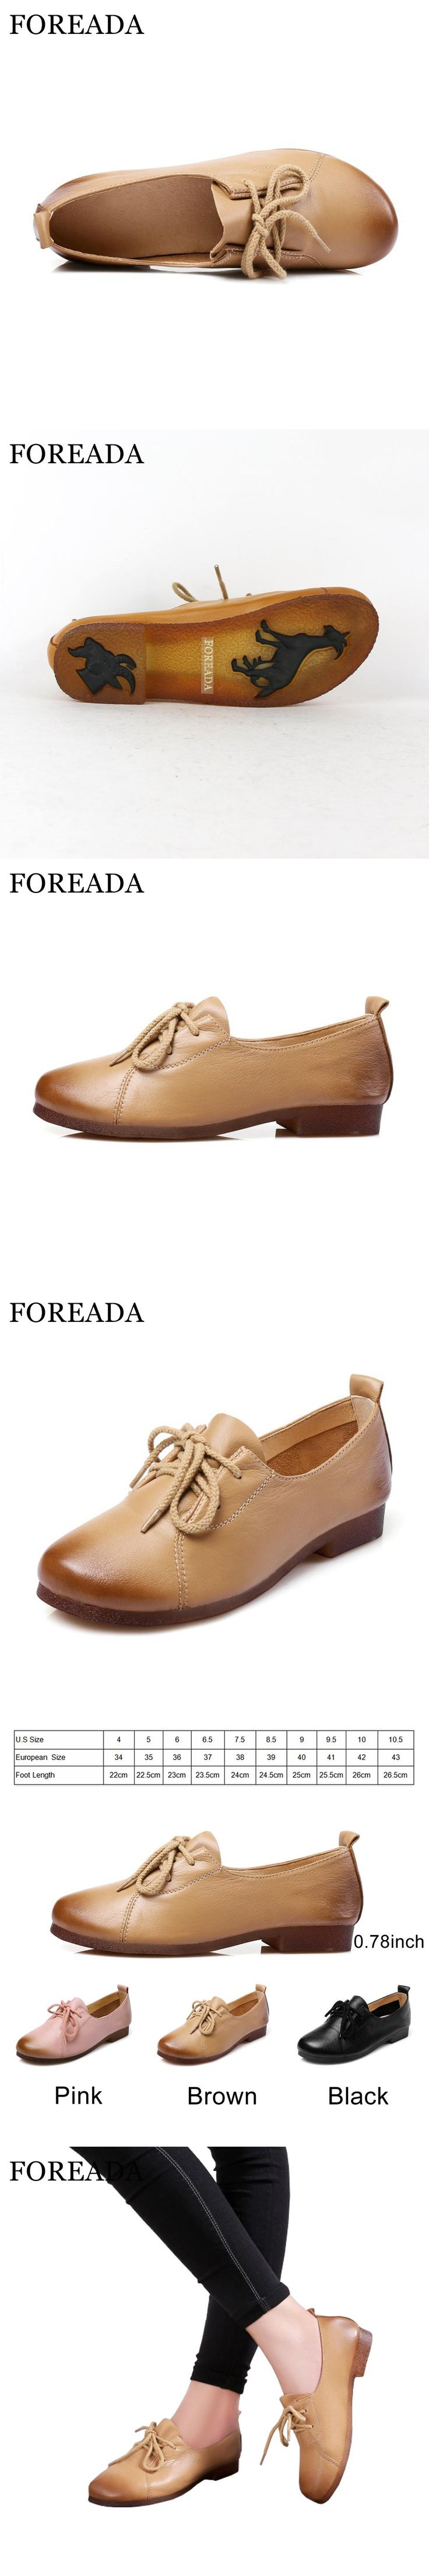 FOREADA Genuine Leather Shoes Women Flats Round Toe Lace Up Oxfords Shoes Real Leather Casual Boat Shoes Brown Pink Size 34-40